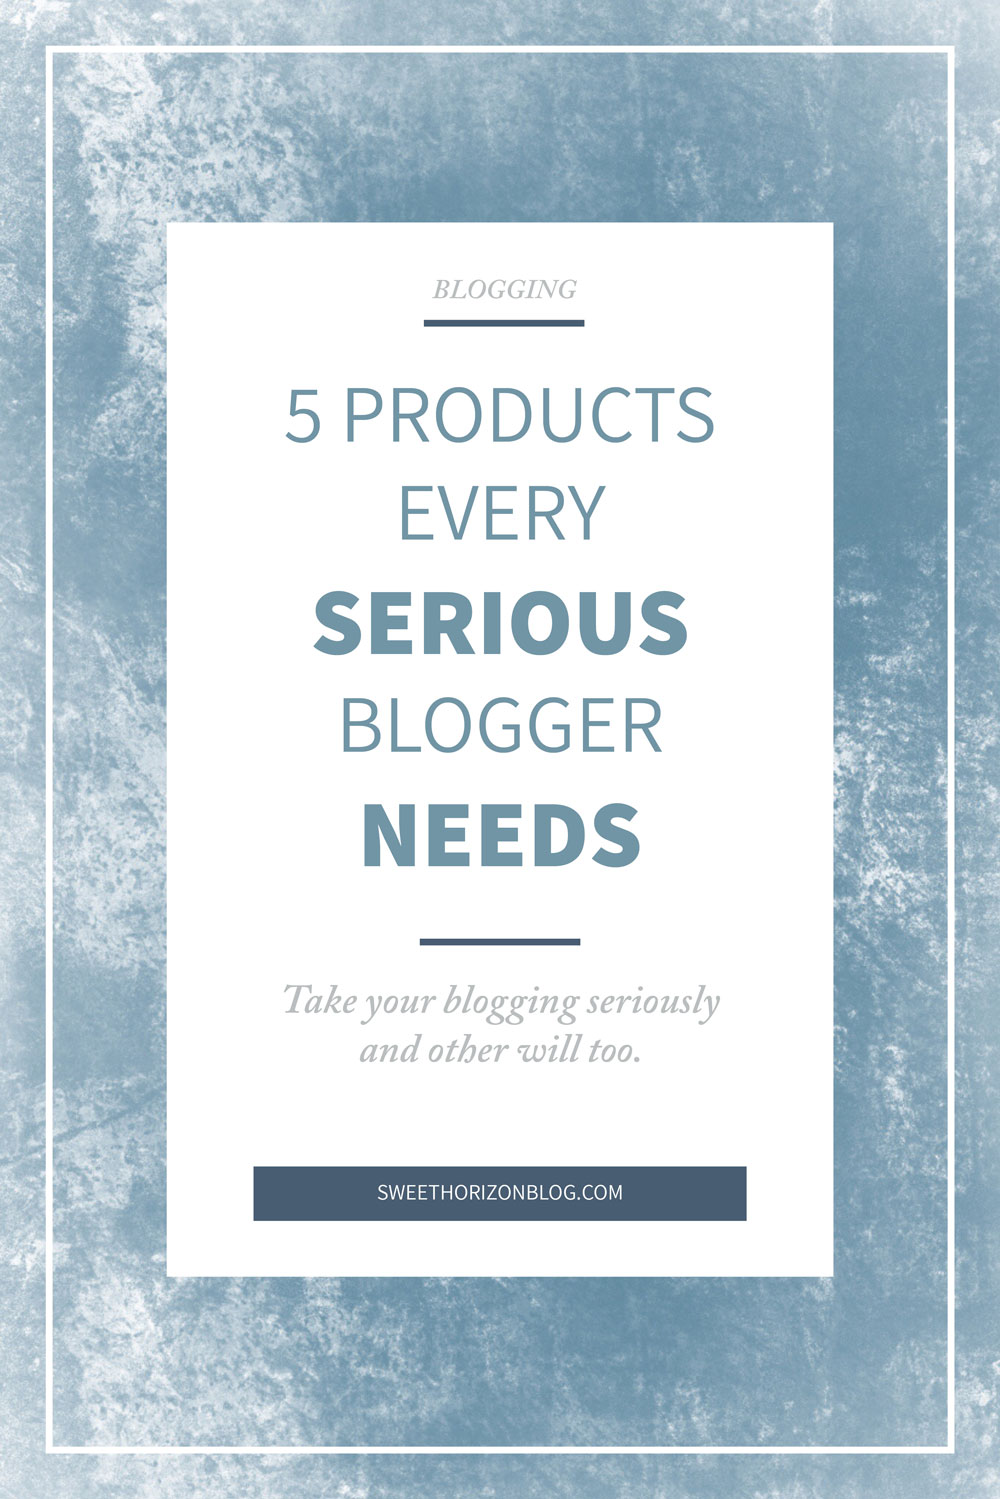 5 Products Every Serious Blogger Needs from www.sweethorizonblog.com